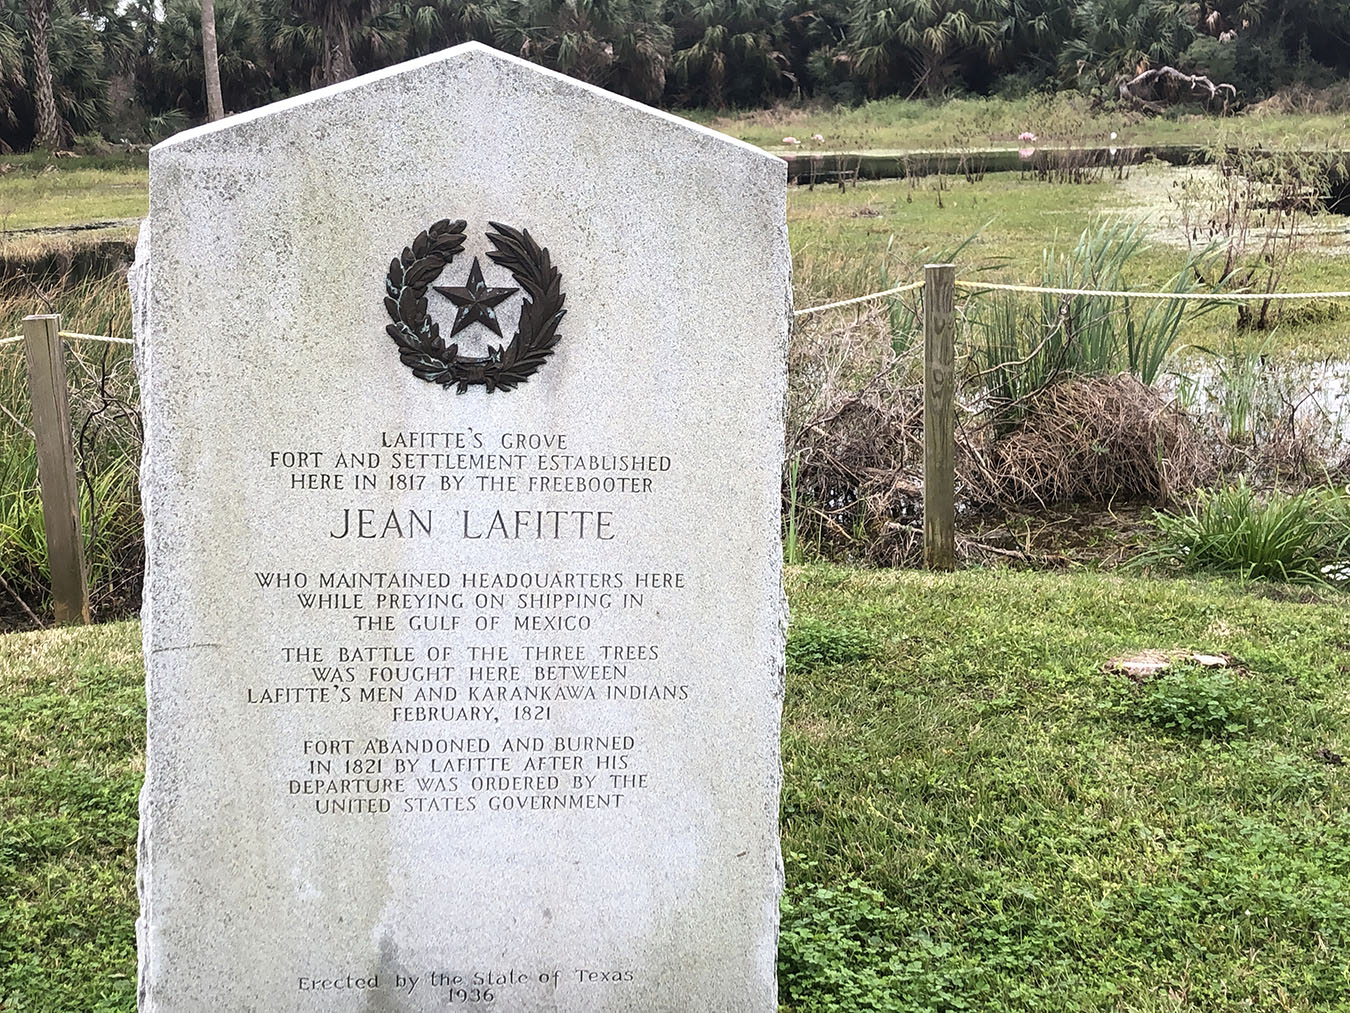 Lafittes Grove Historical Marker